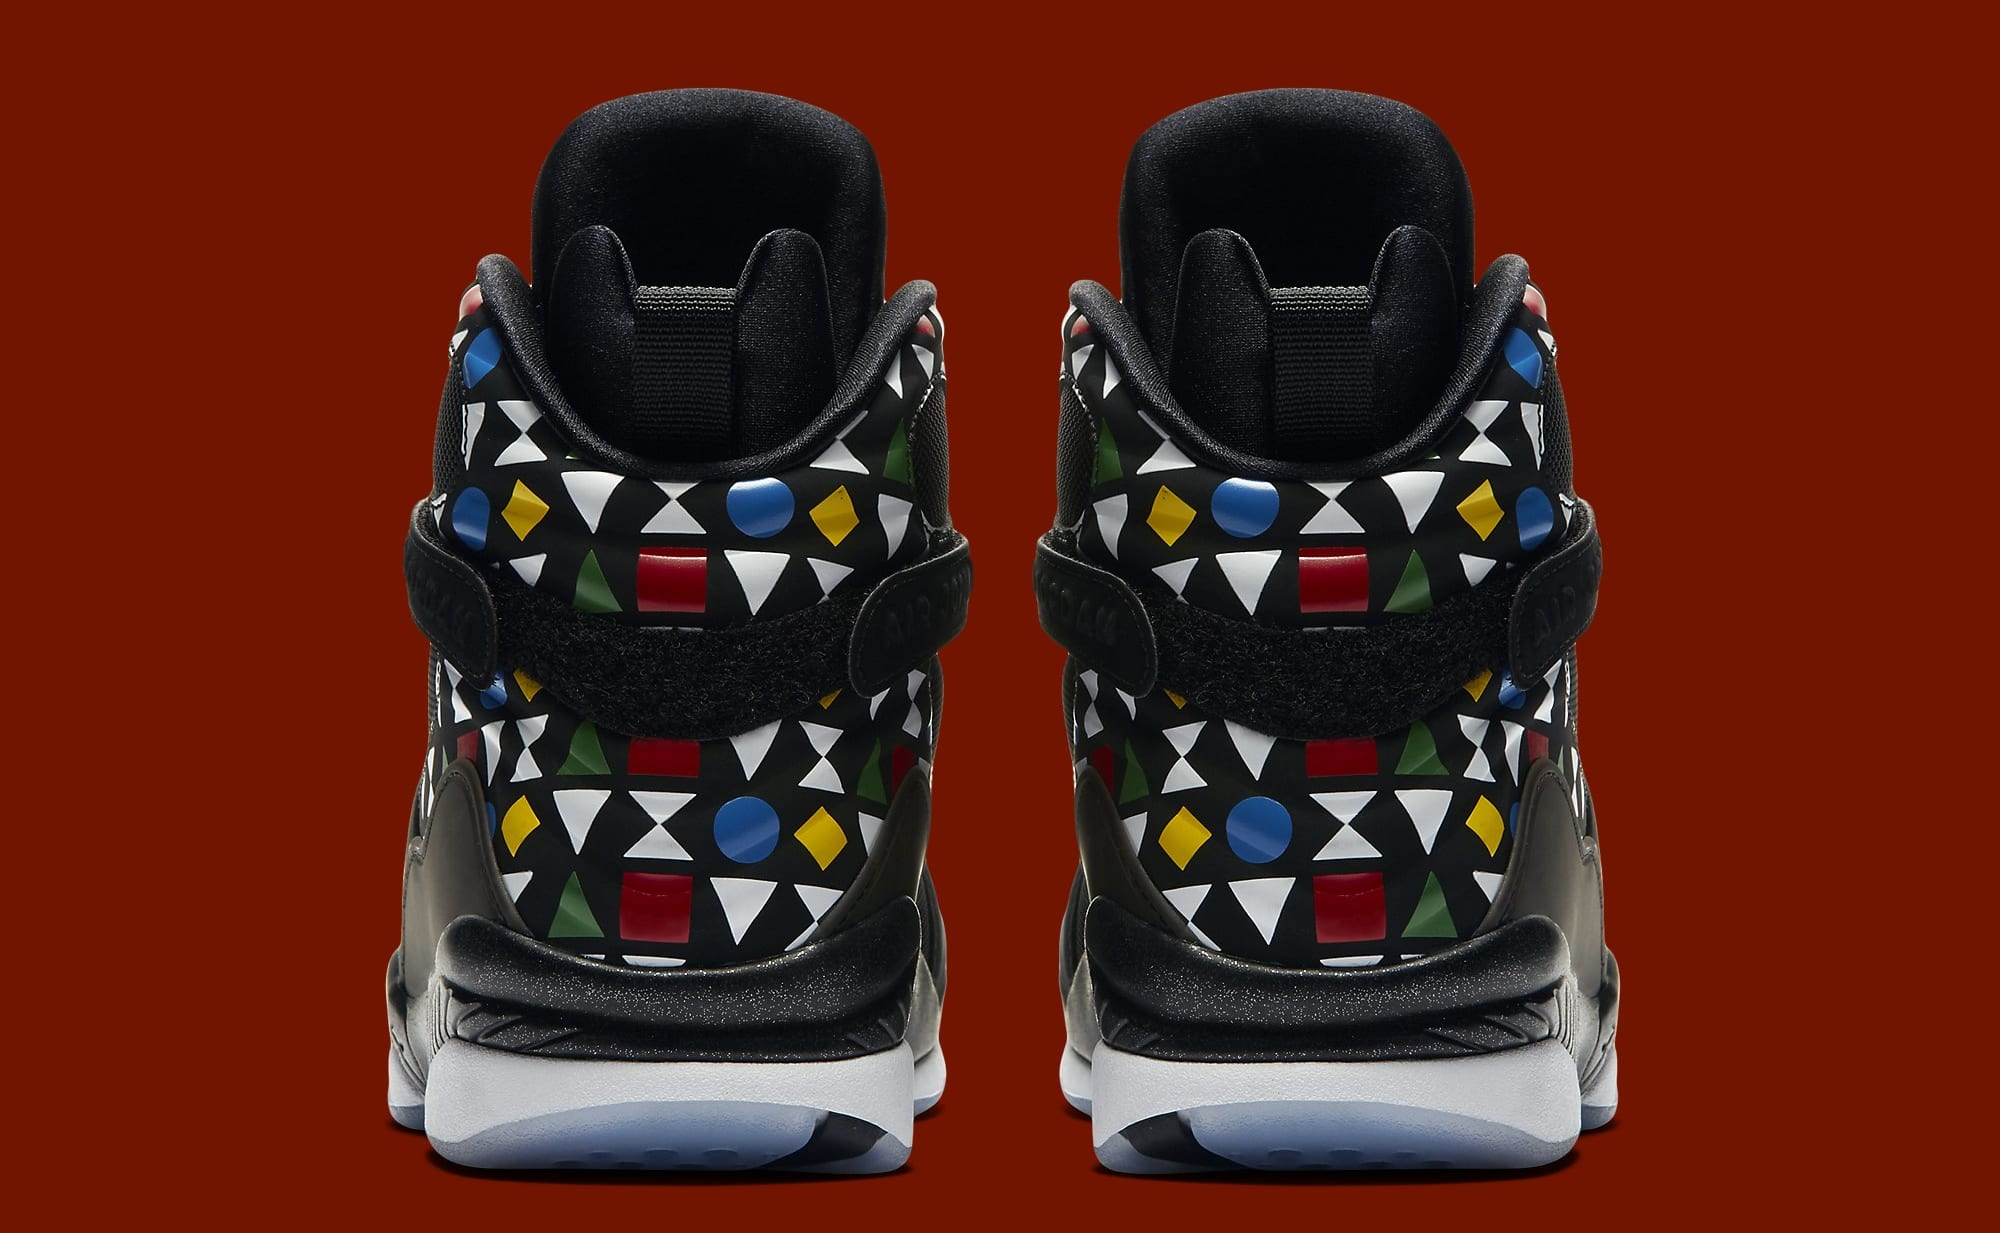 Air Jordan 8 Retro 'Quai 54' CJ9218-001 Heel